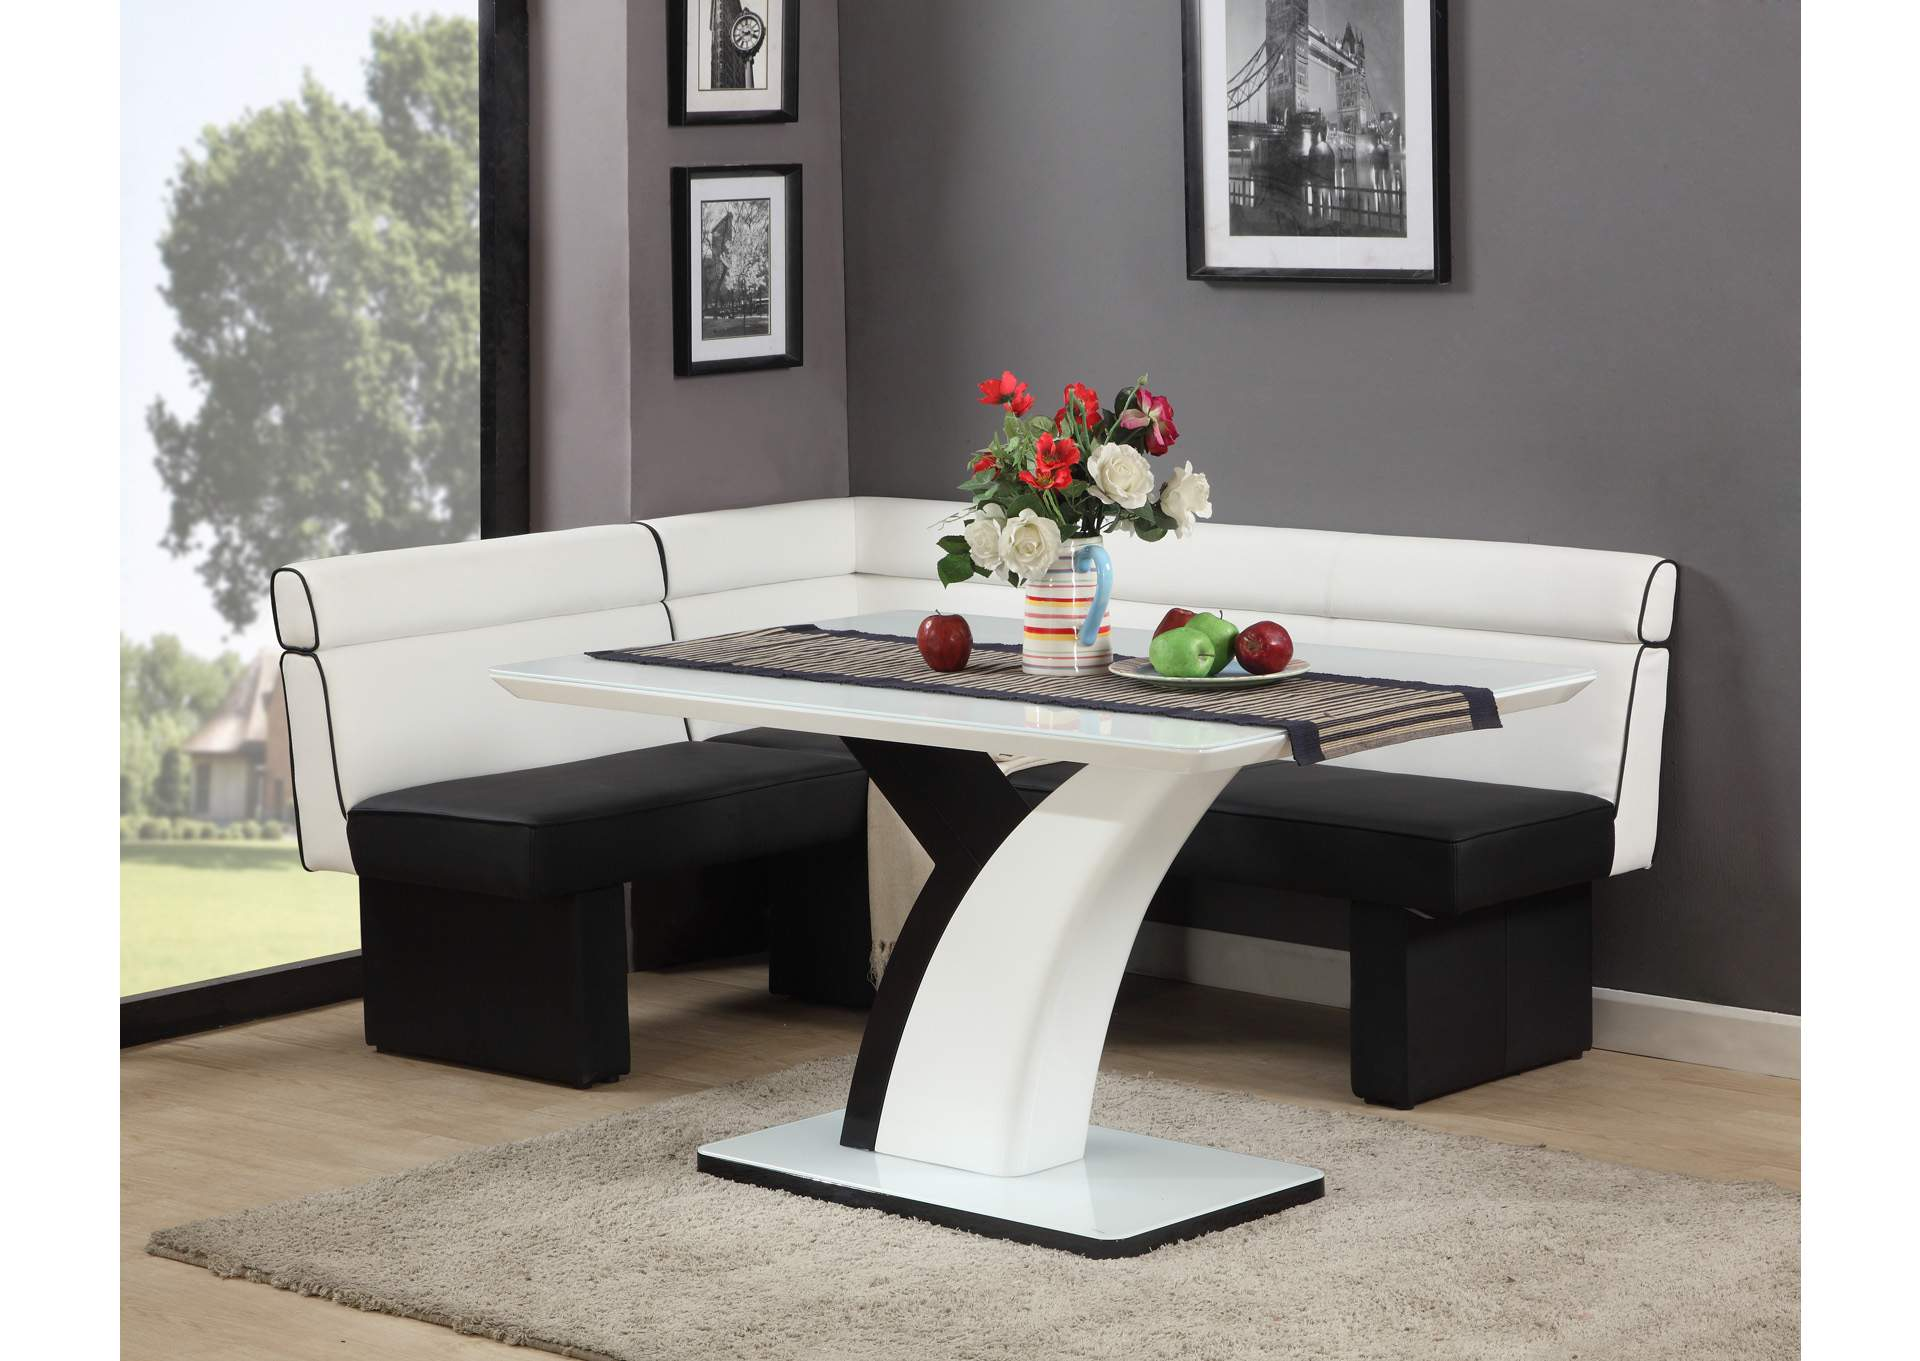 Natasha Gloss White & Black Rectangular Dining Table & Nook,Chintaly Imports